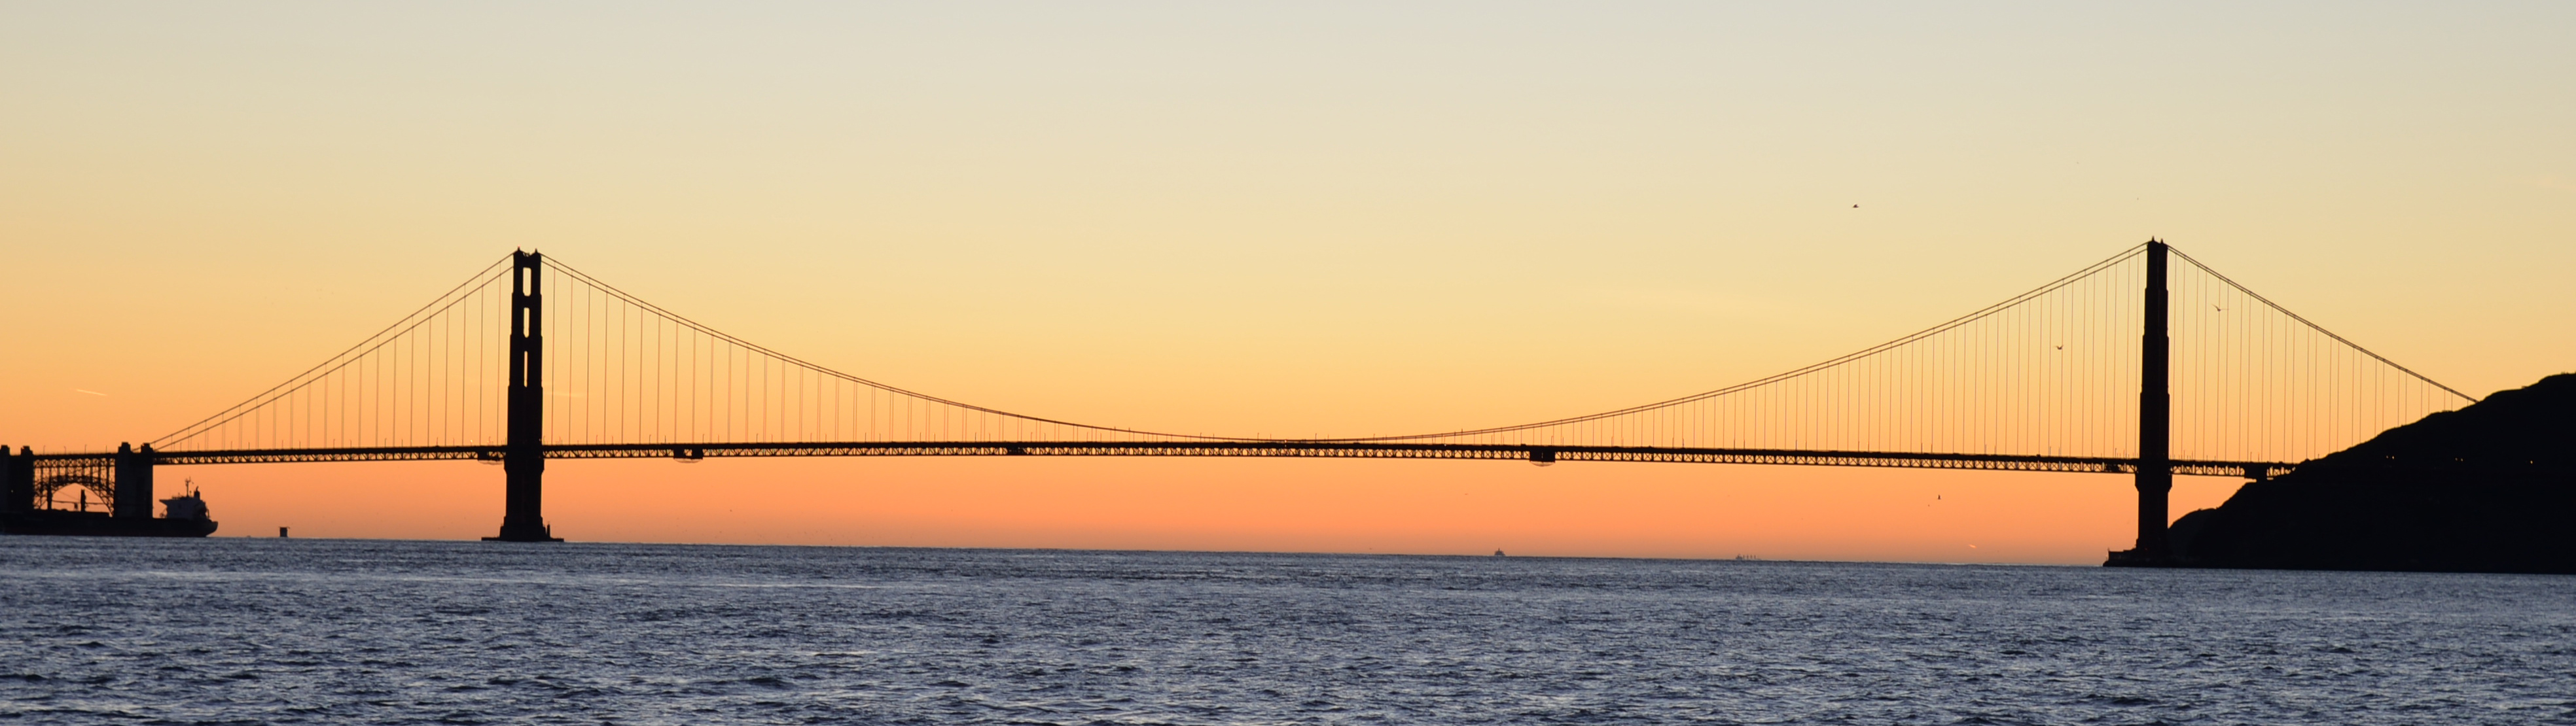 File:Golden-Gate-Bridge.svg - Wikimedia Commons